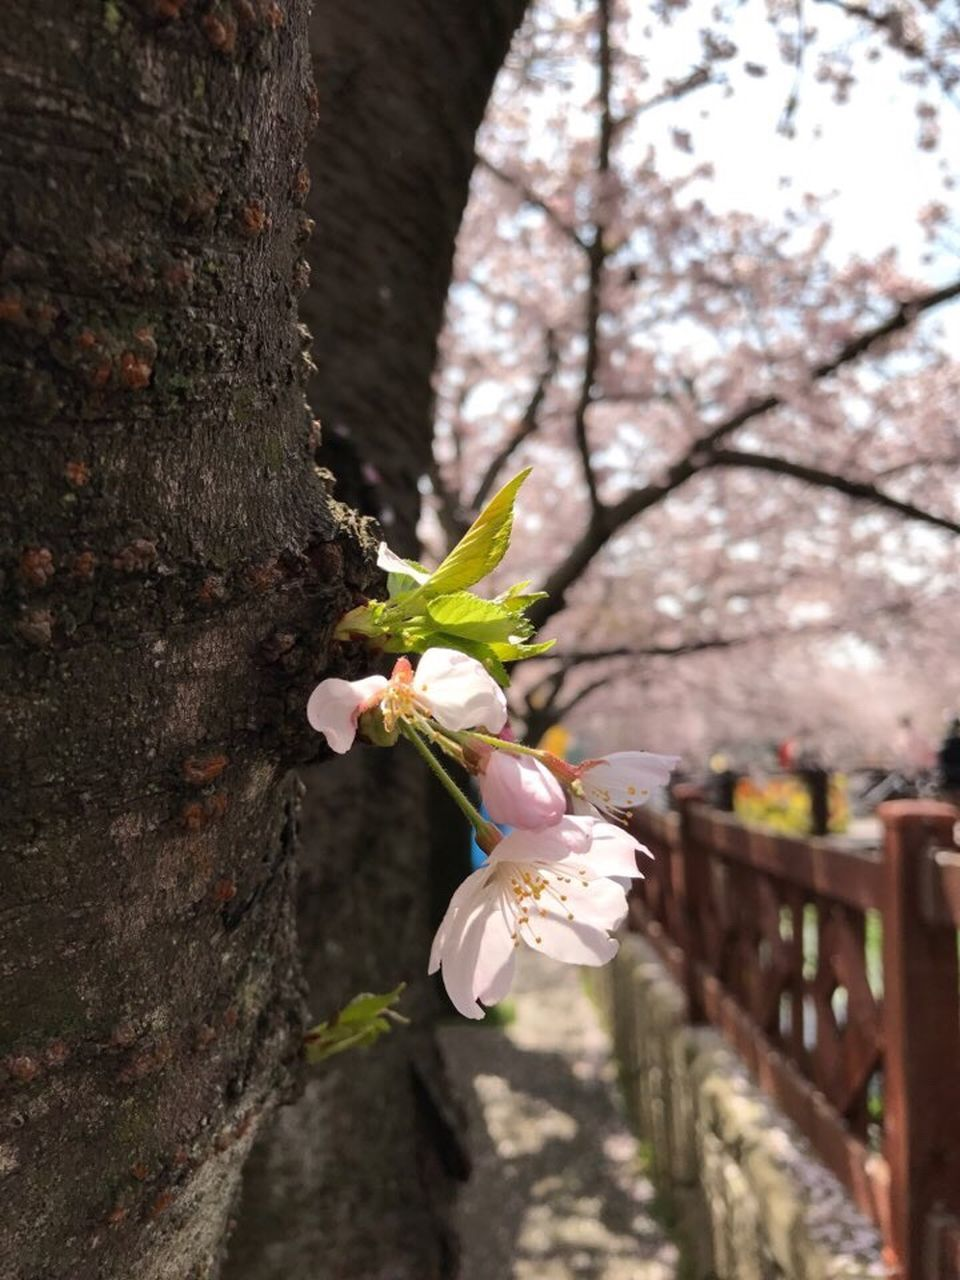 flower, tree, fragility, blossom, growth, nature, petal, beauty in nature, white color, freshness, botany, branch, springtime, flower head, day, no people, tree trunk, close-up, outdoors, blooming